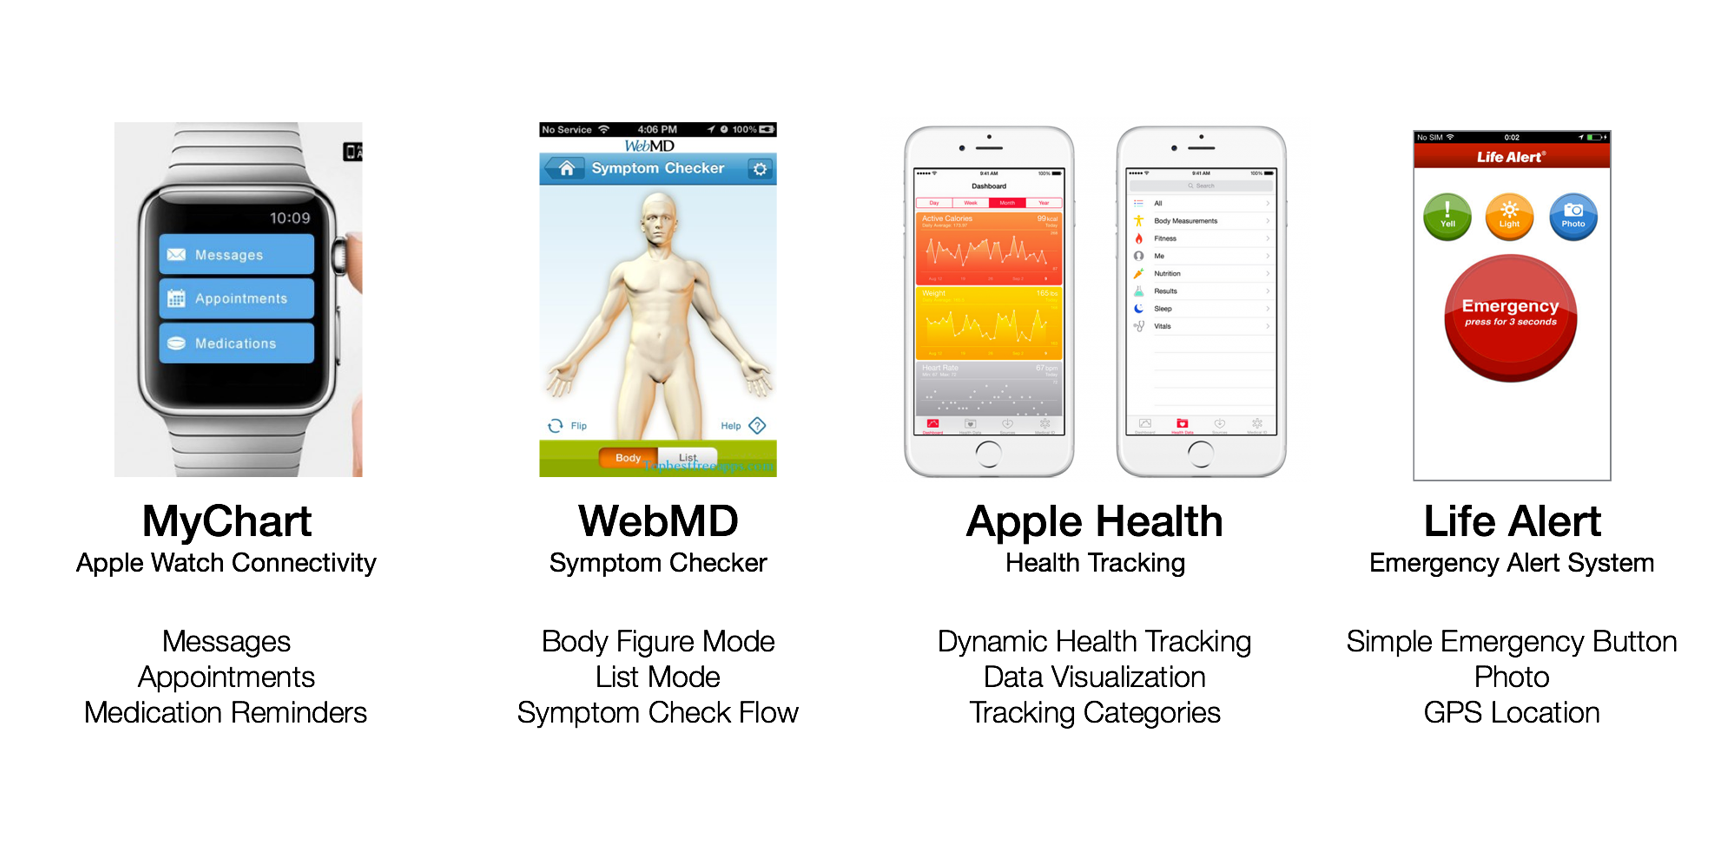 Comparing other health related apps on the market. Listed are features we were interested in exploring.